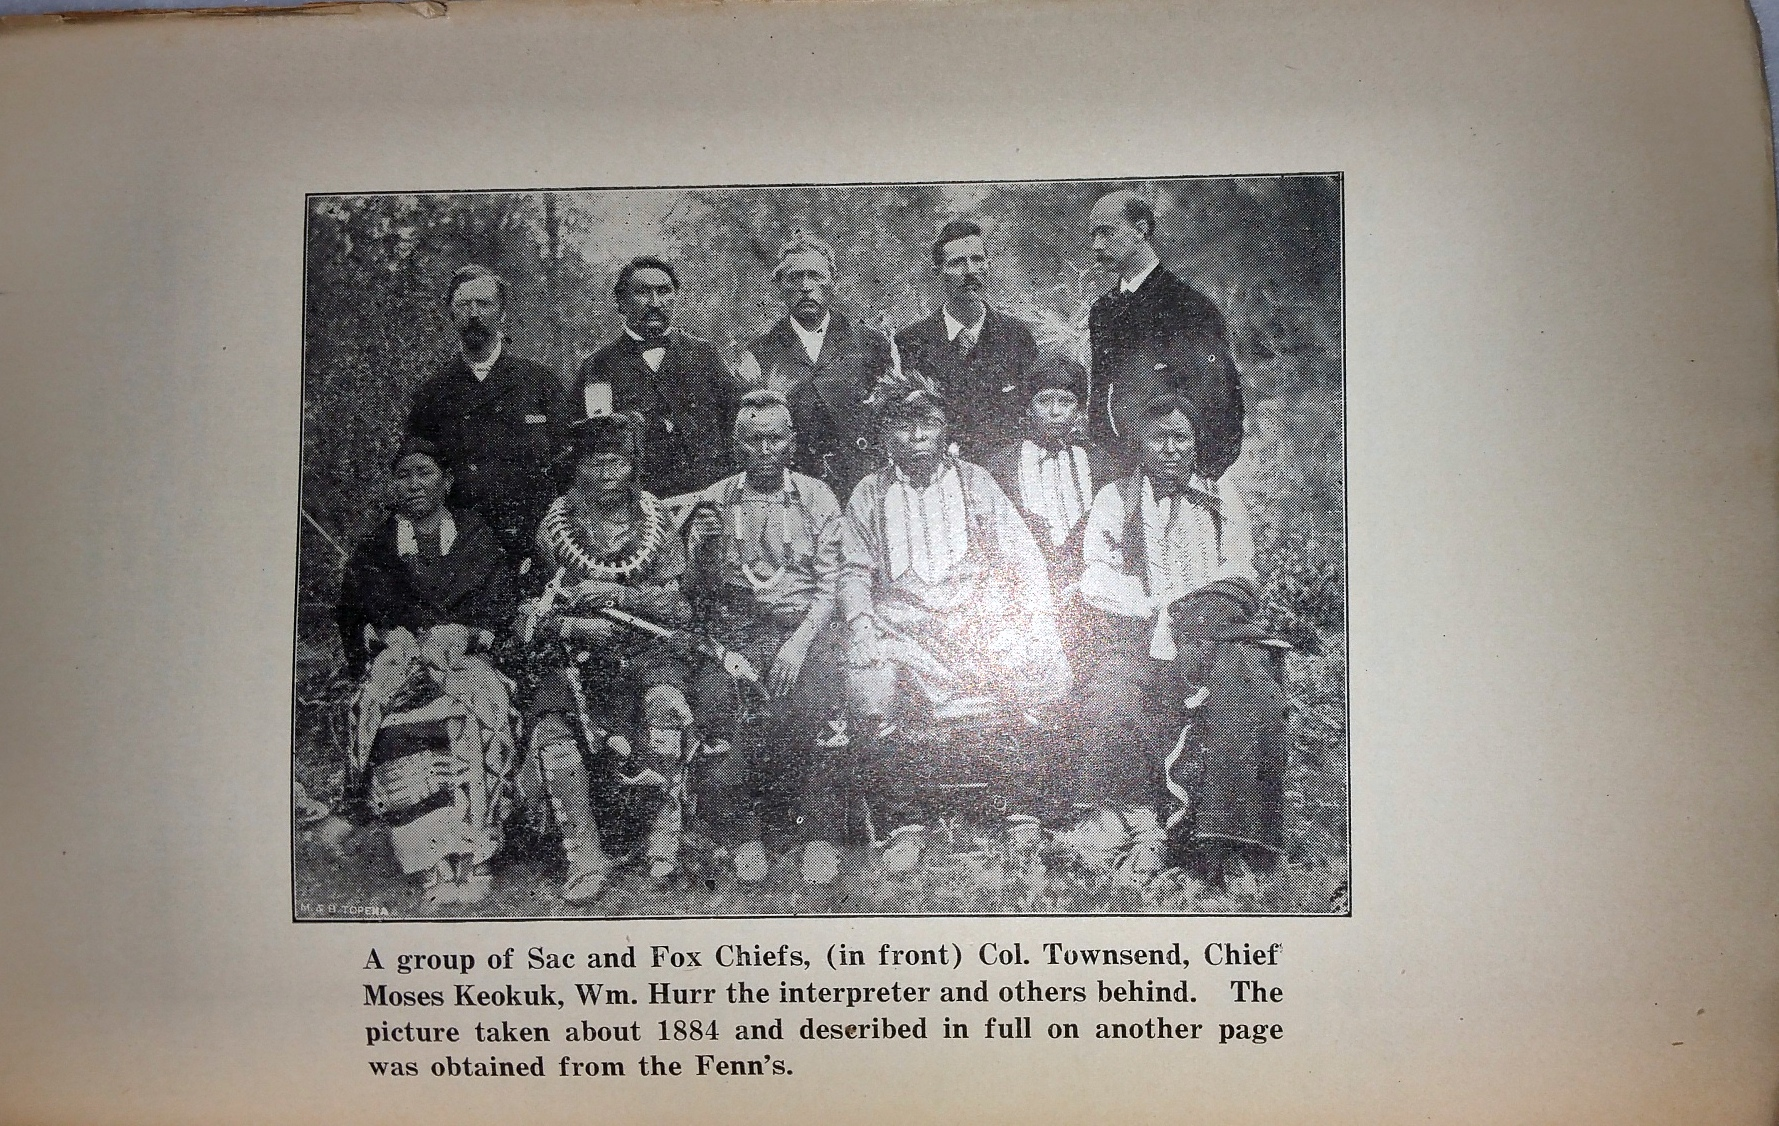 Image for Green's Historical Series. Early Days in Kansas. In Keokuks Time on the Kansas Reservation.  Being Various Incidents Pertaining to the Keokuks, The Sac & Fox Indians (Mississippi Band,) and Tales of the Early Settlers, Life on the Kansas Reservation...